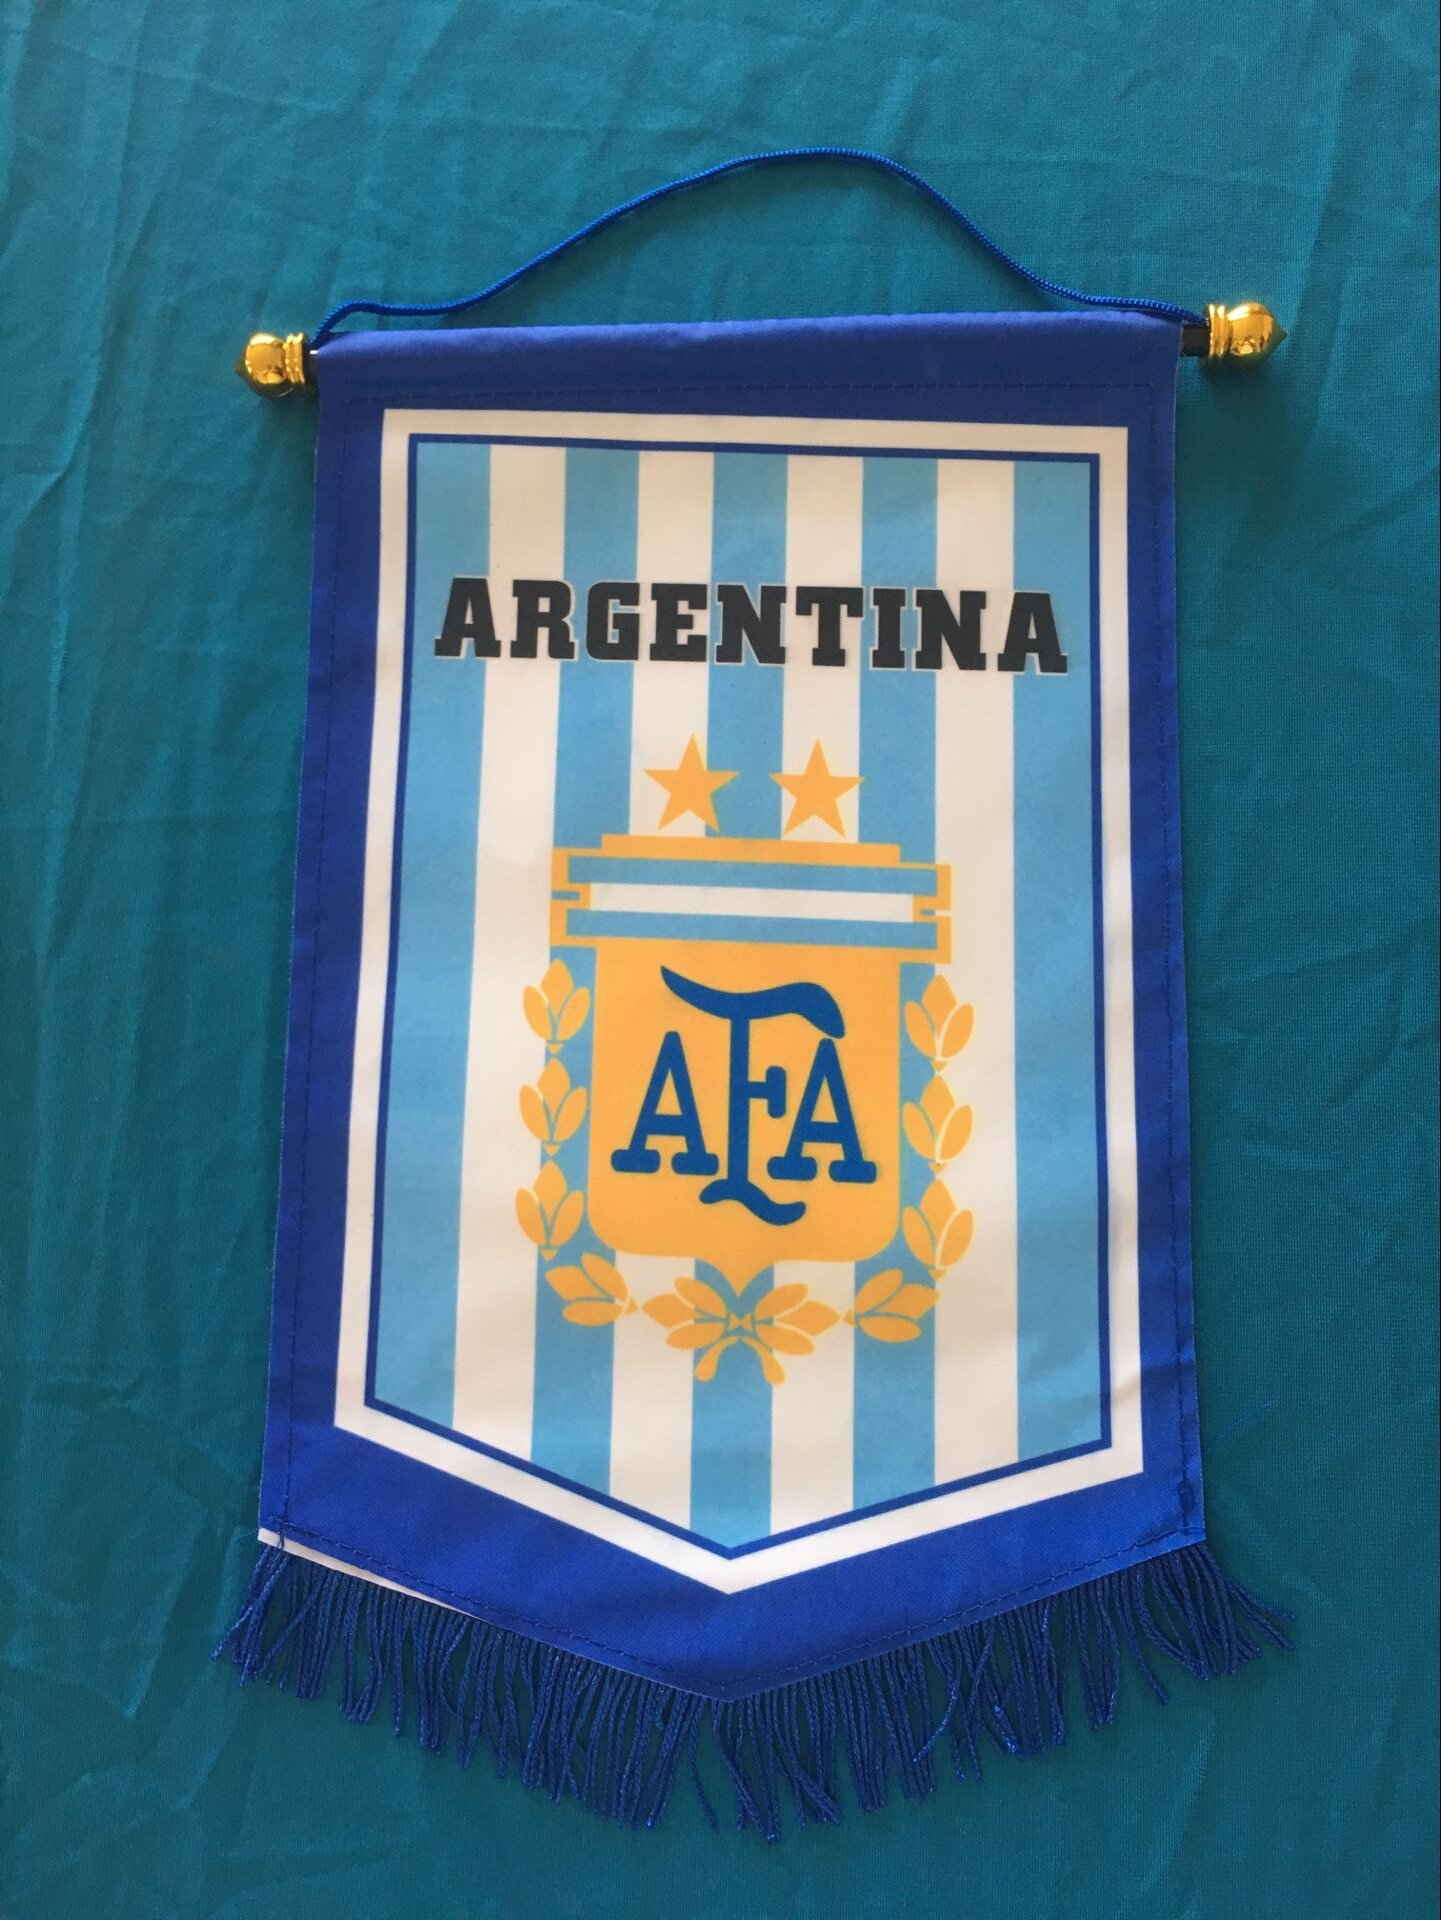 Argentina Hang Flag Decor Football Fans Souvenir